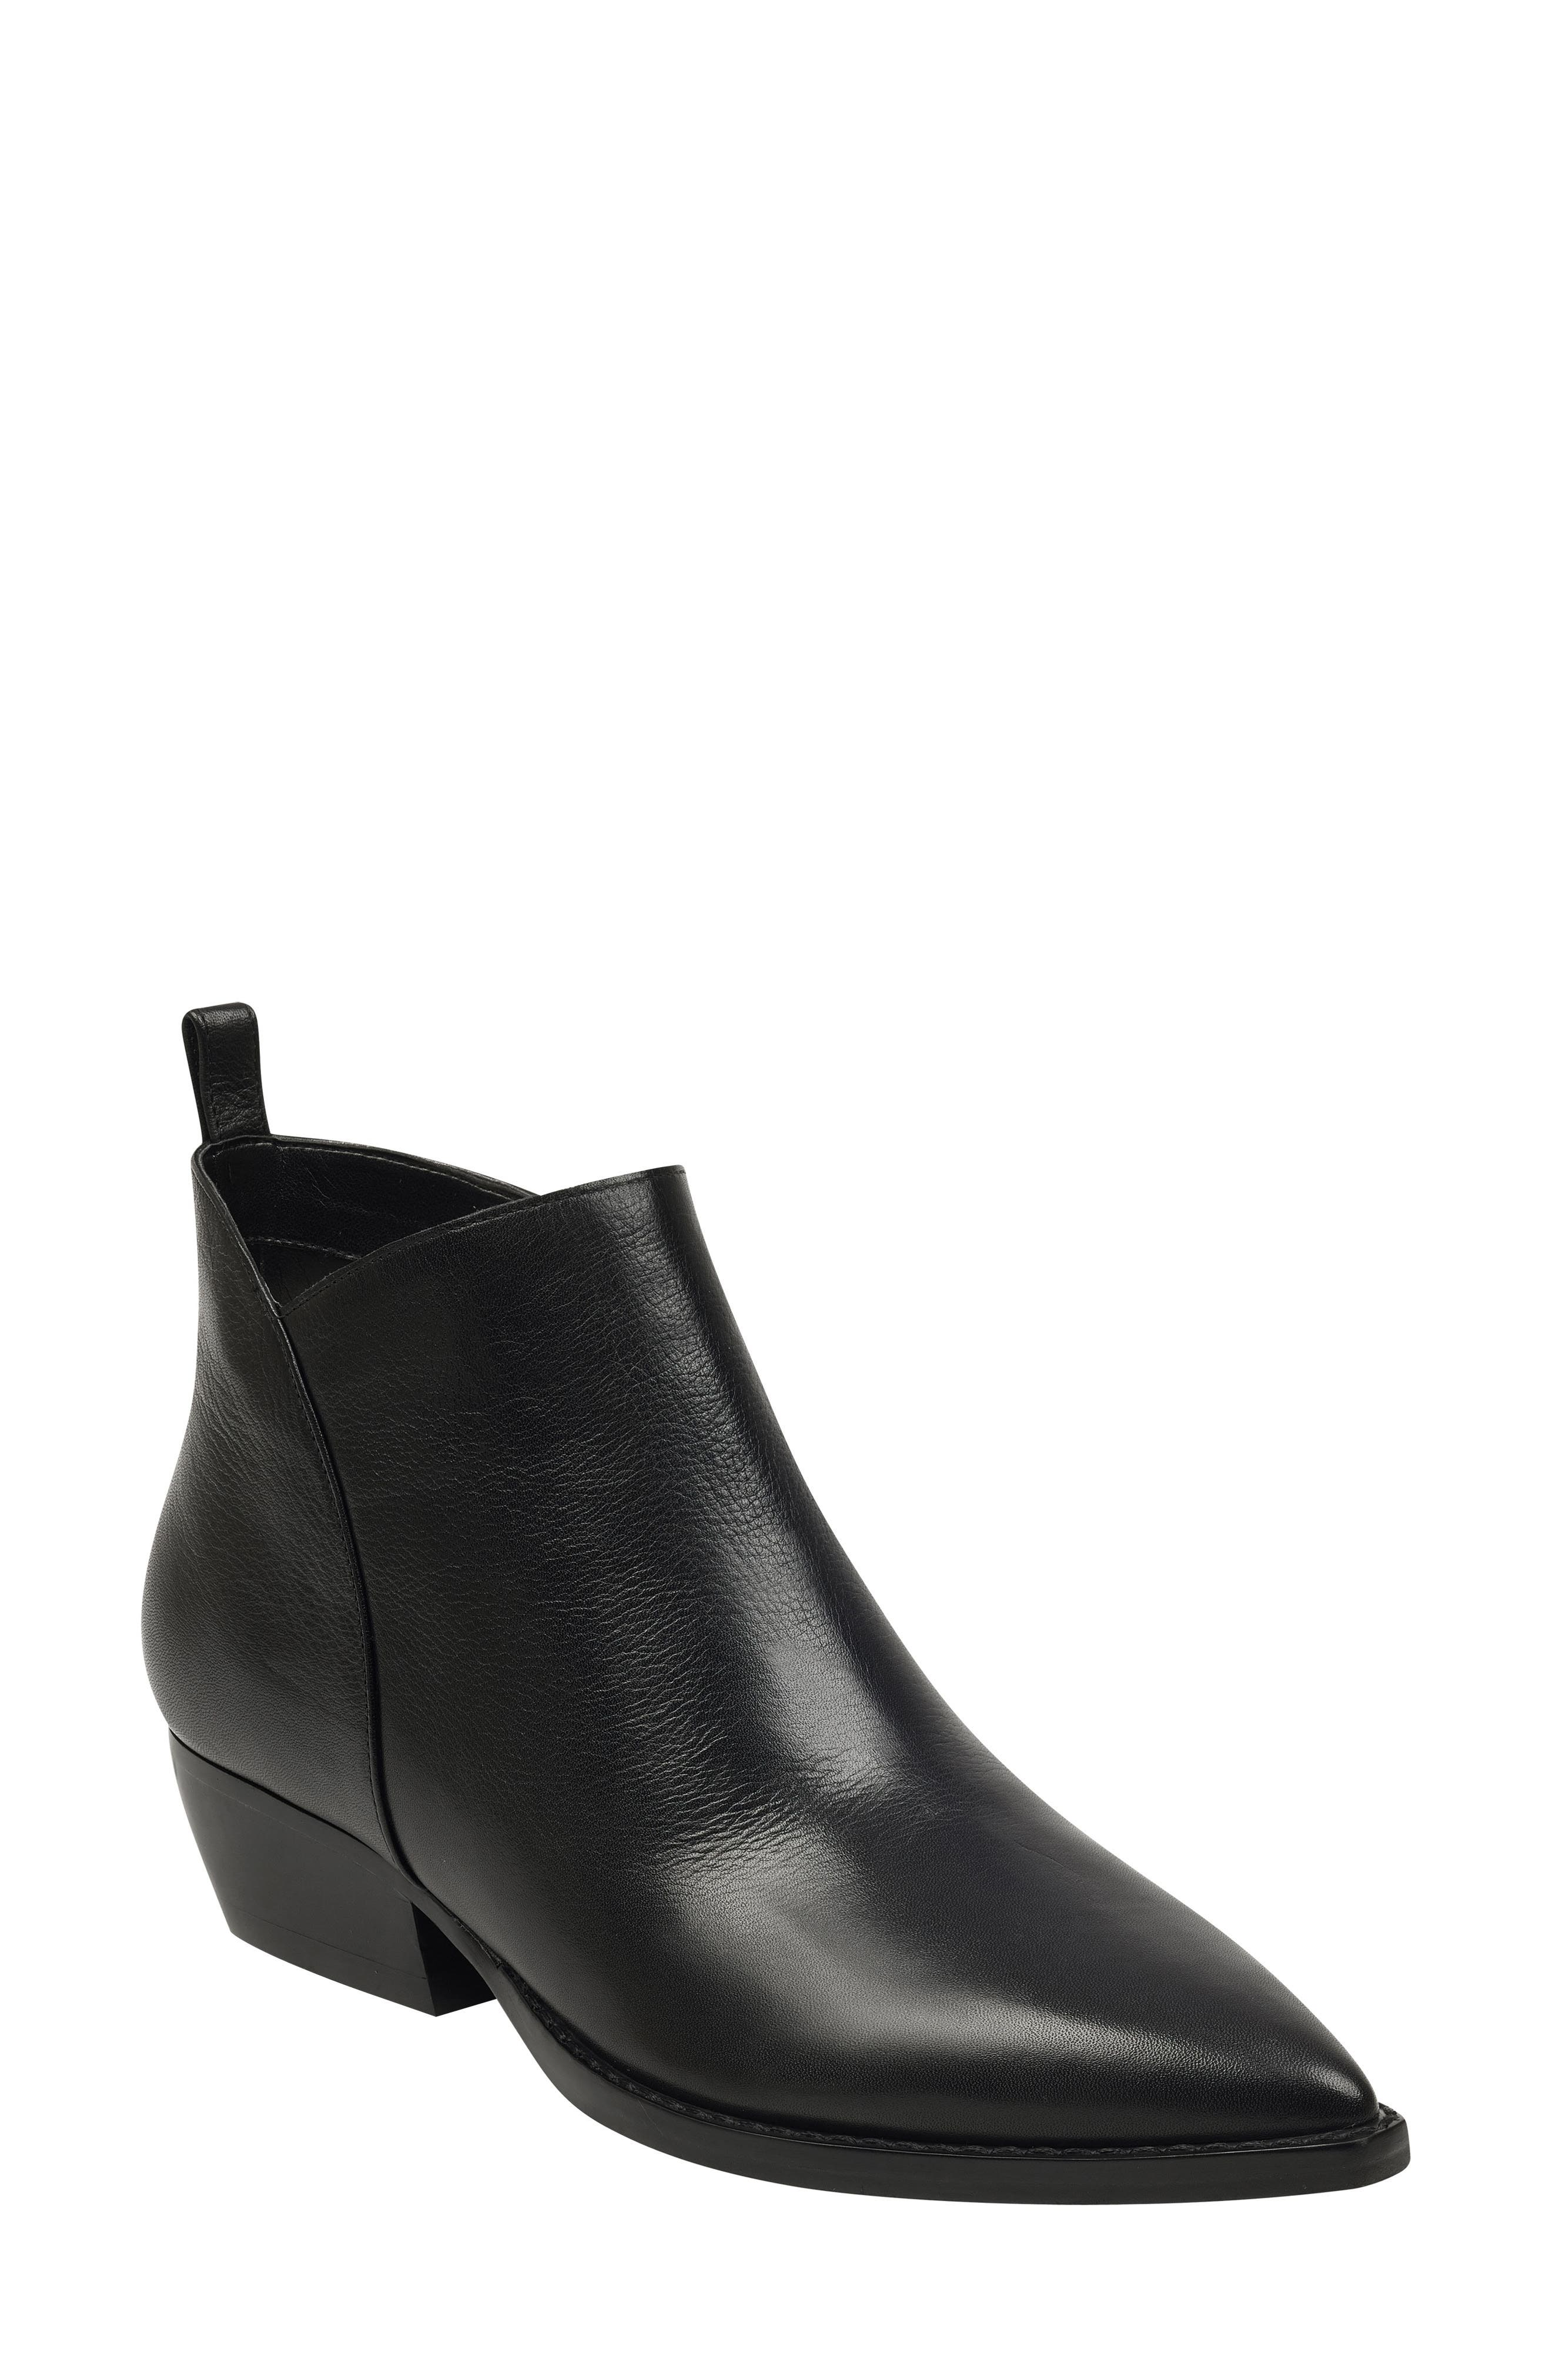 Image of Marc Fisher LTD Obrra Pointy Toe Bootie